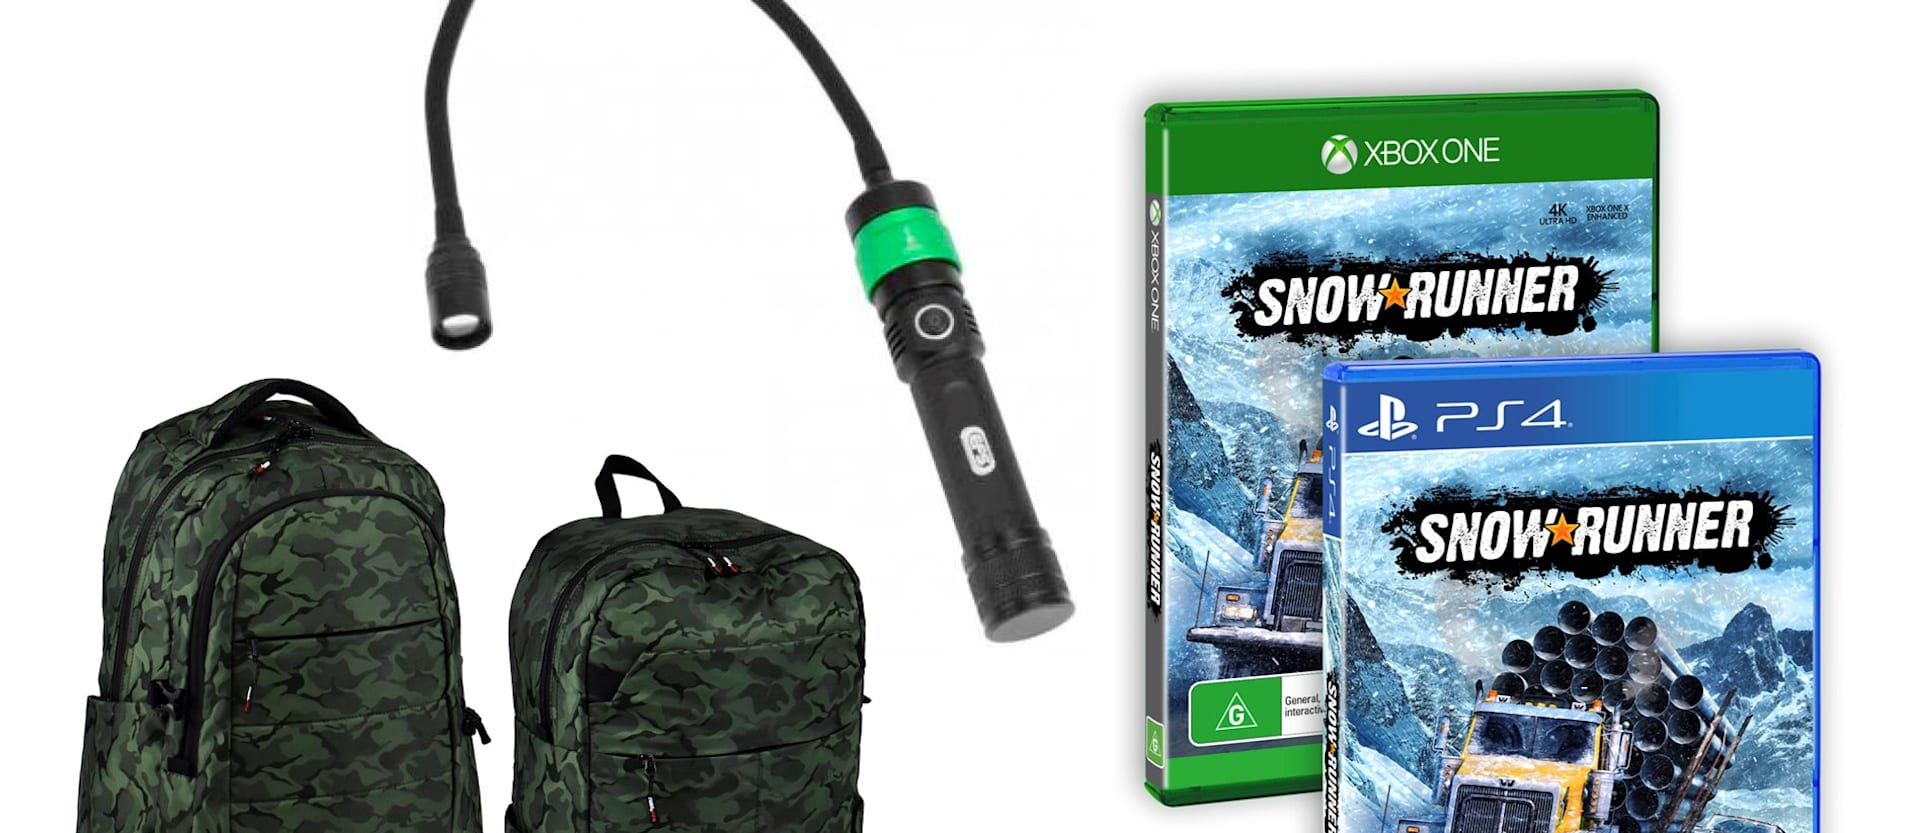 Blackwolf backpack, EFS tactical torch and SnowRunner game